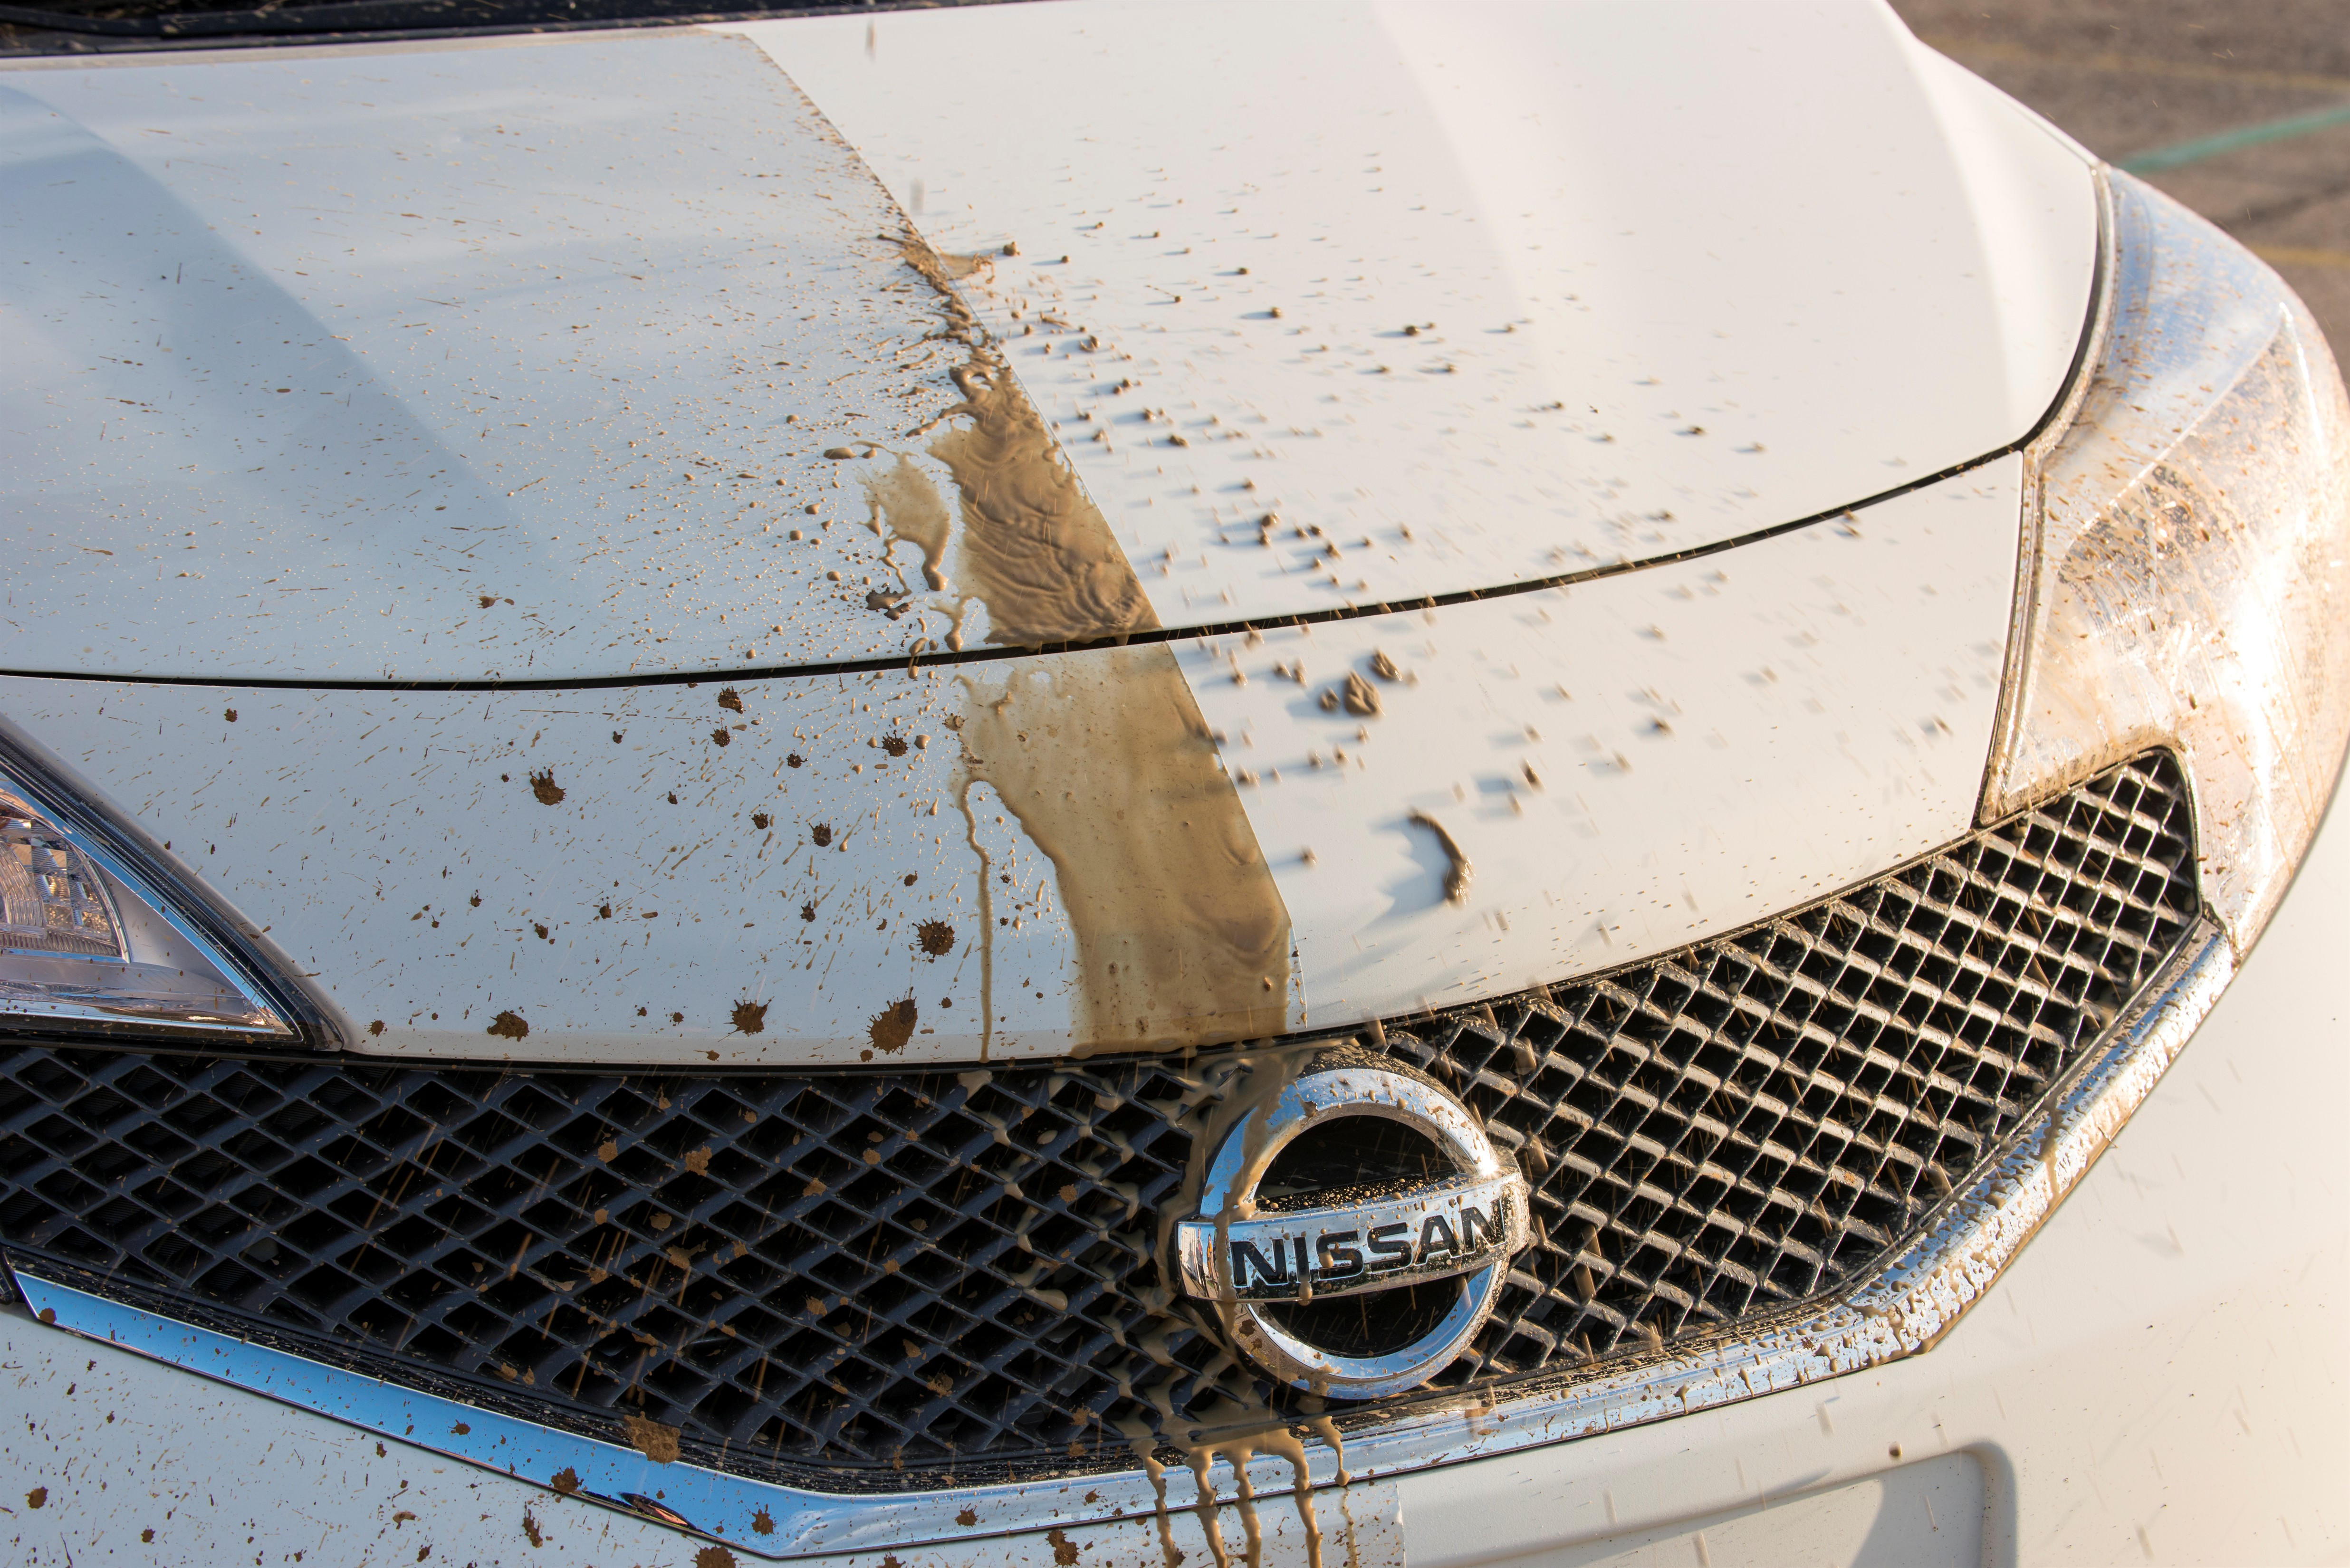 Nissan Ultra-Ever Dry test